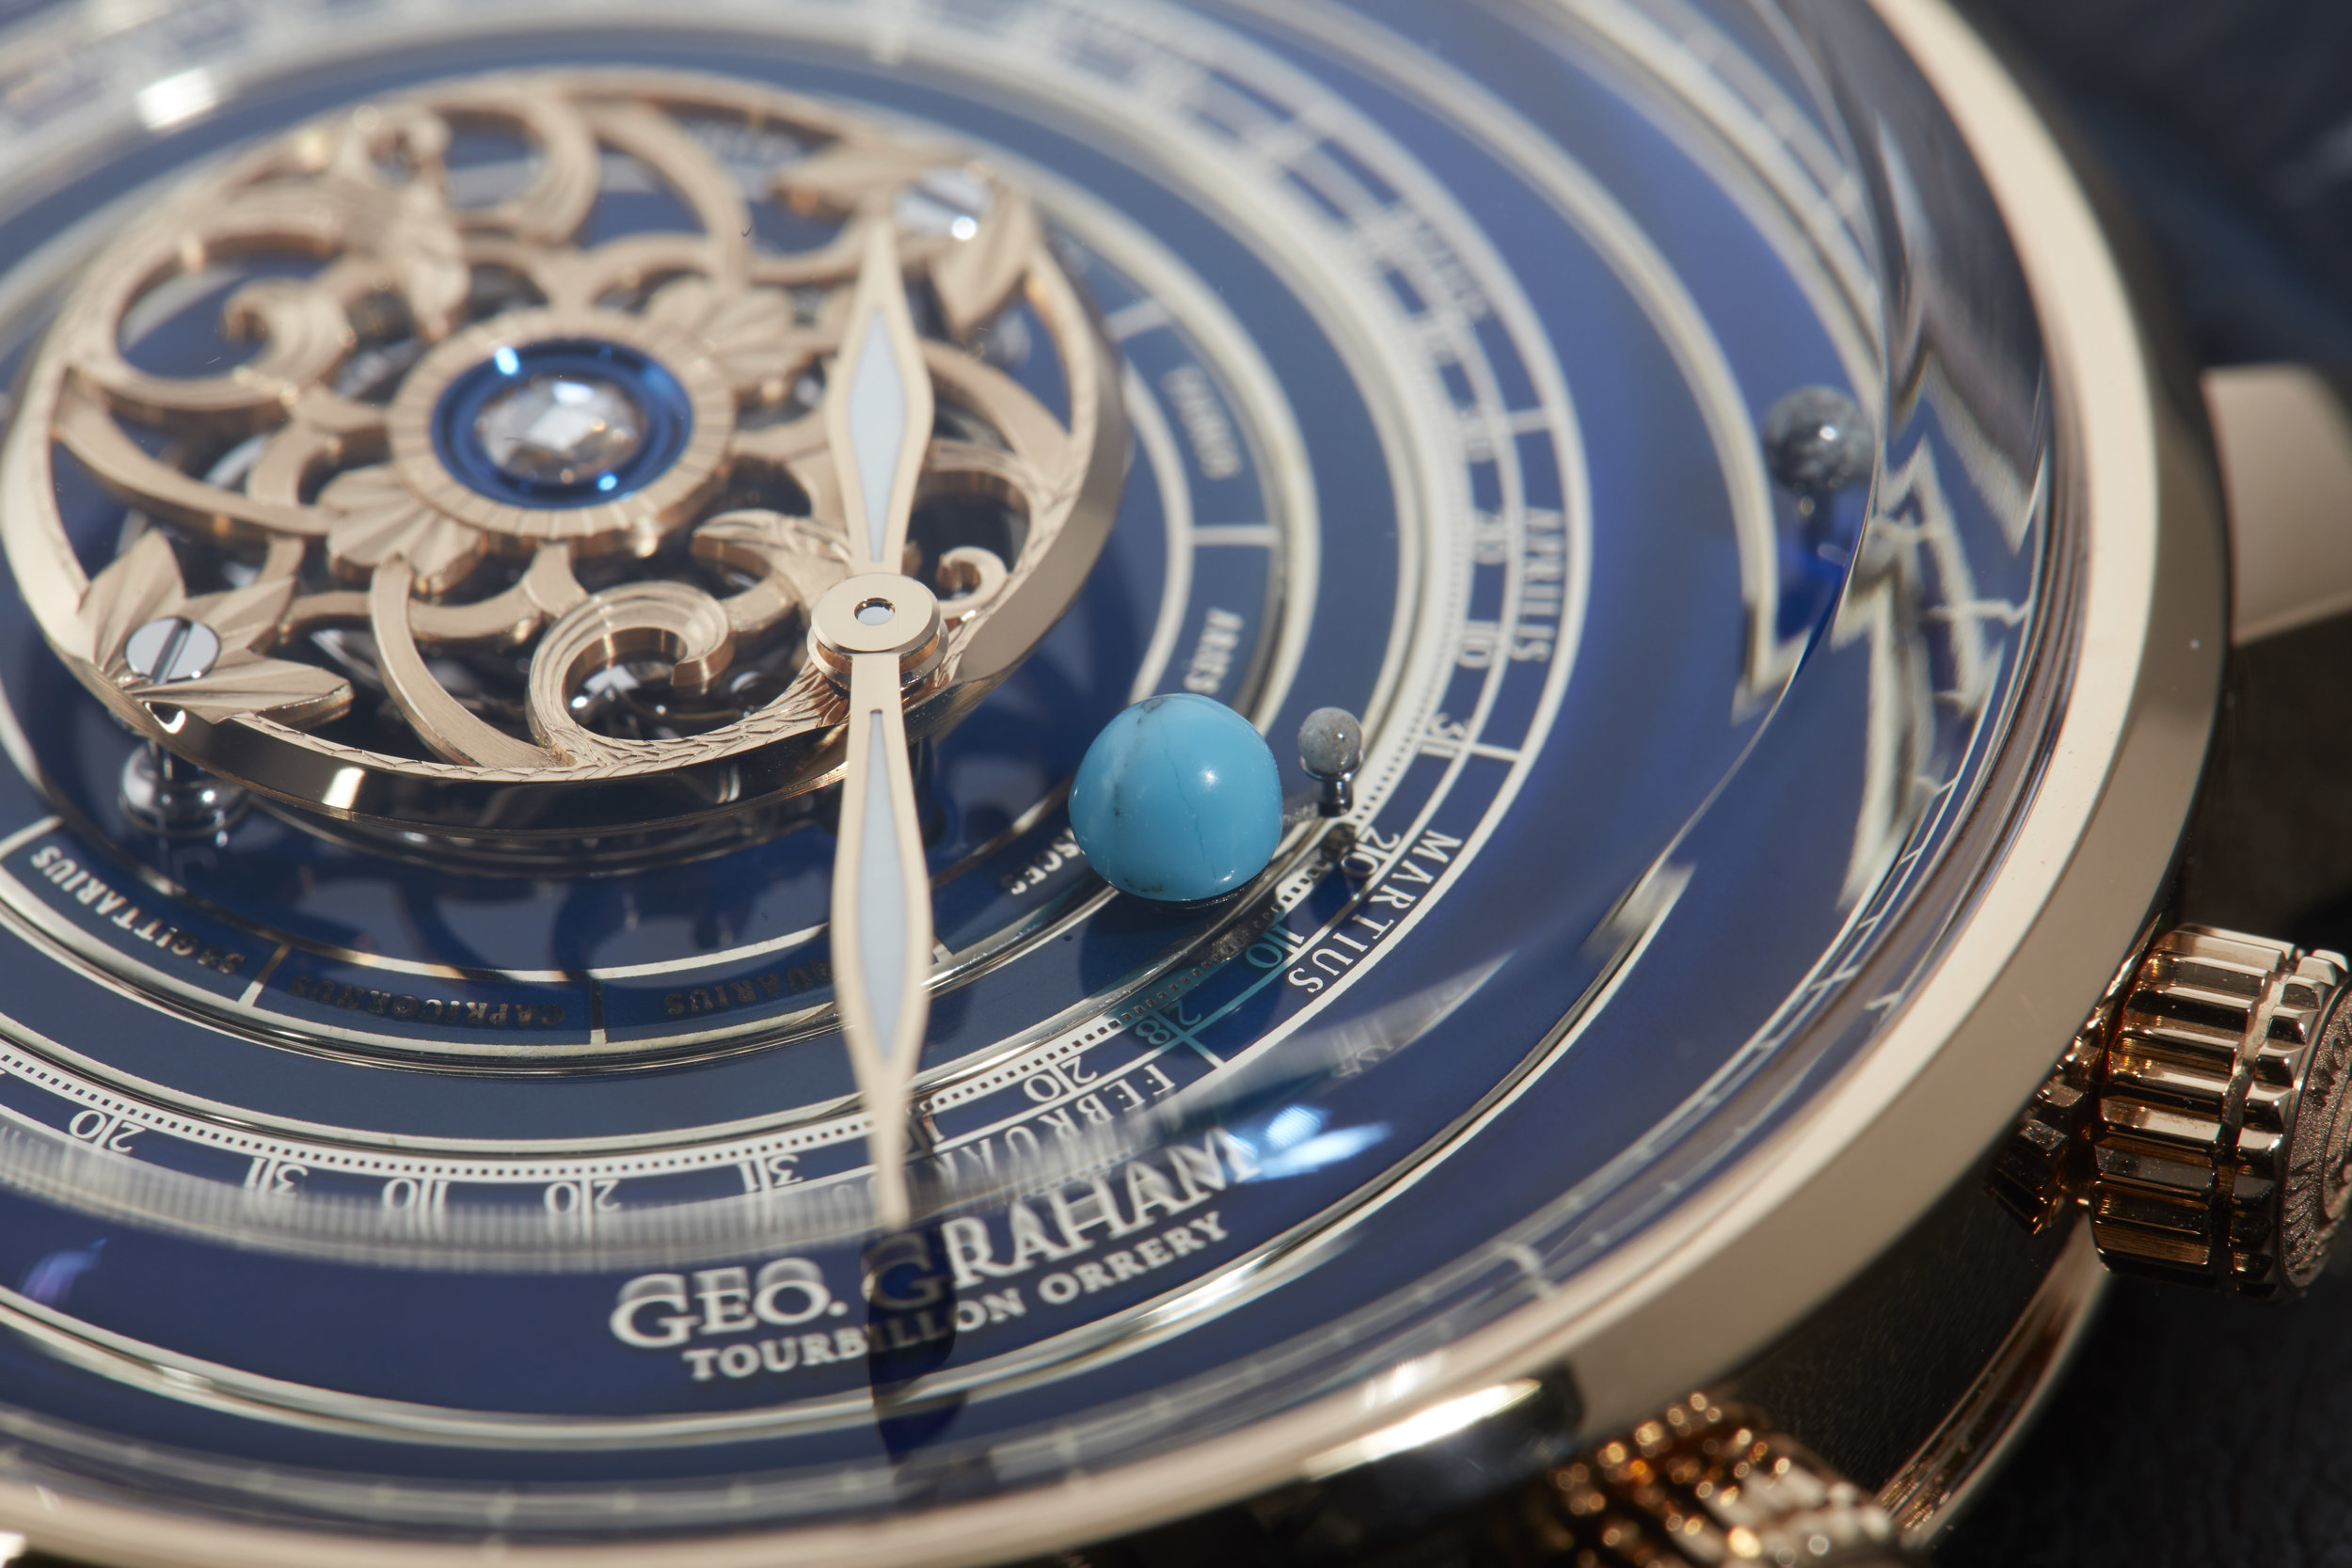 Geo. Graham Orrery Tourbillon